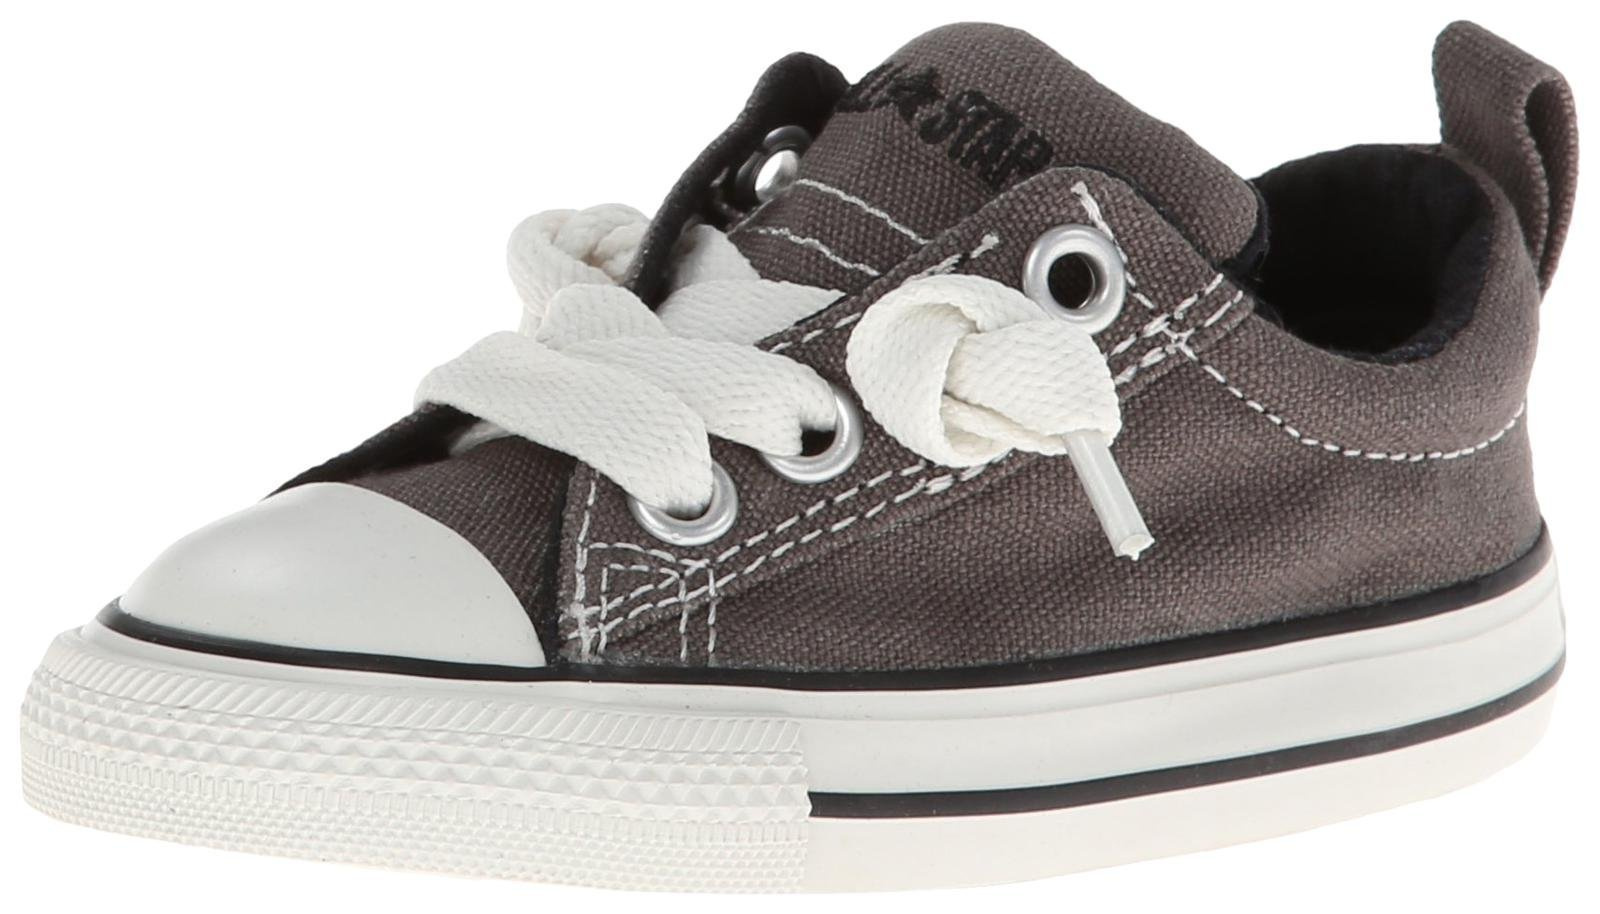 5faf430e1bb Galleon - Converse Kids Kids' Chuck Taylor All Star Street Ox (Infant/Toddler),  Charcoal, 8 M